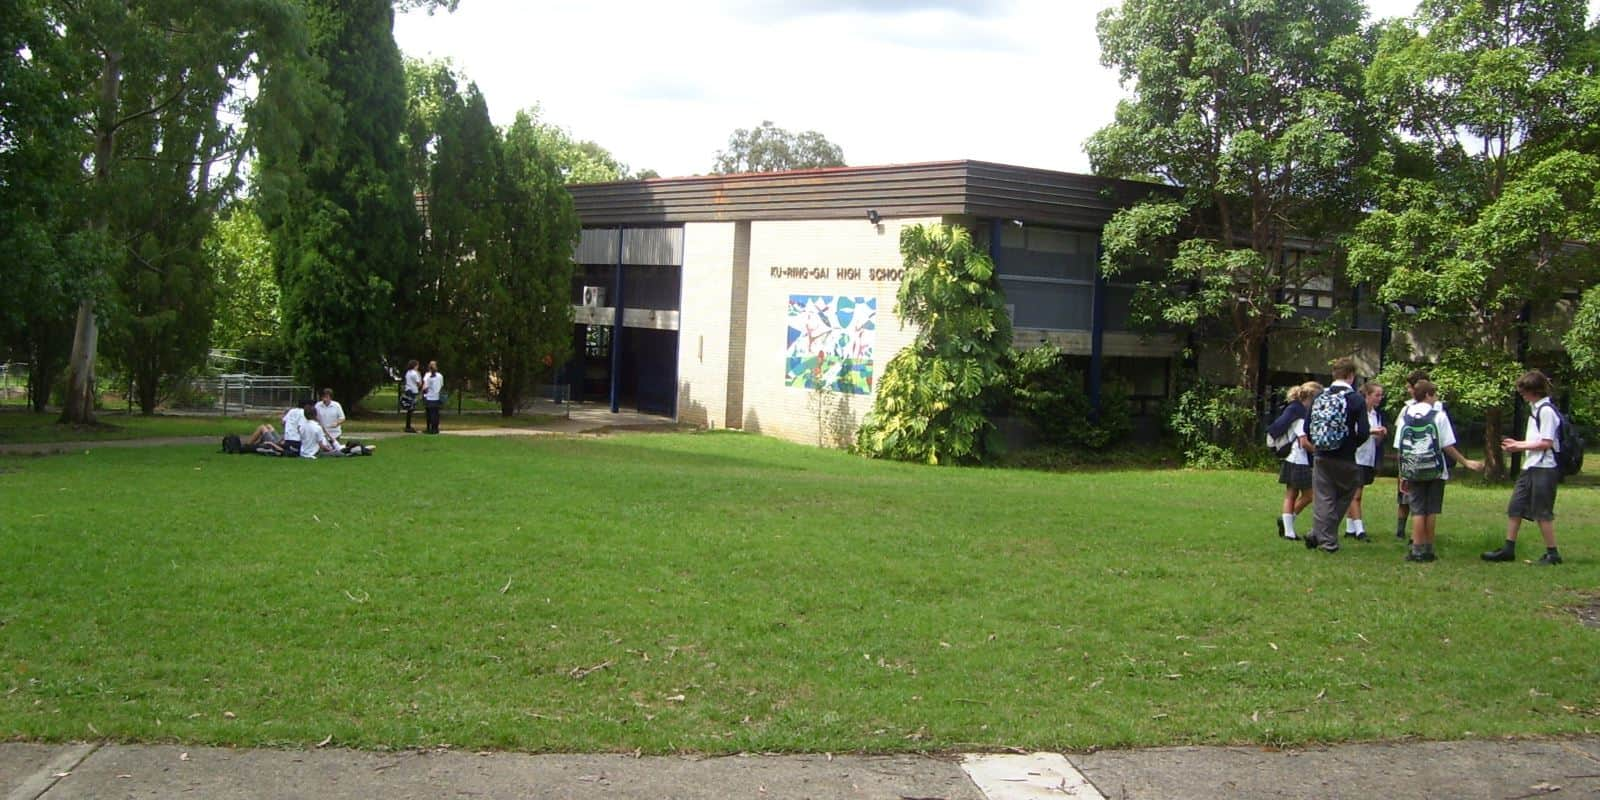 Ku-Ring-Gai High School, Sydney, NSW